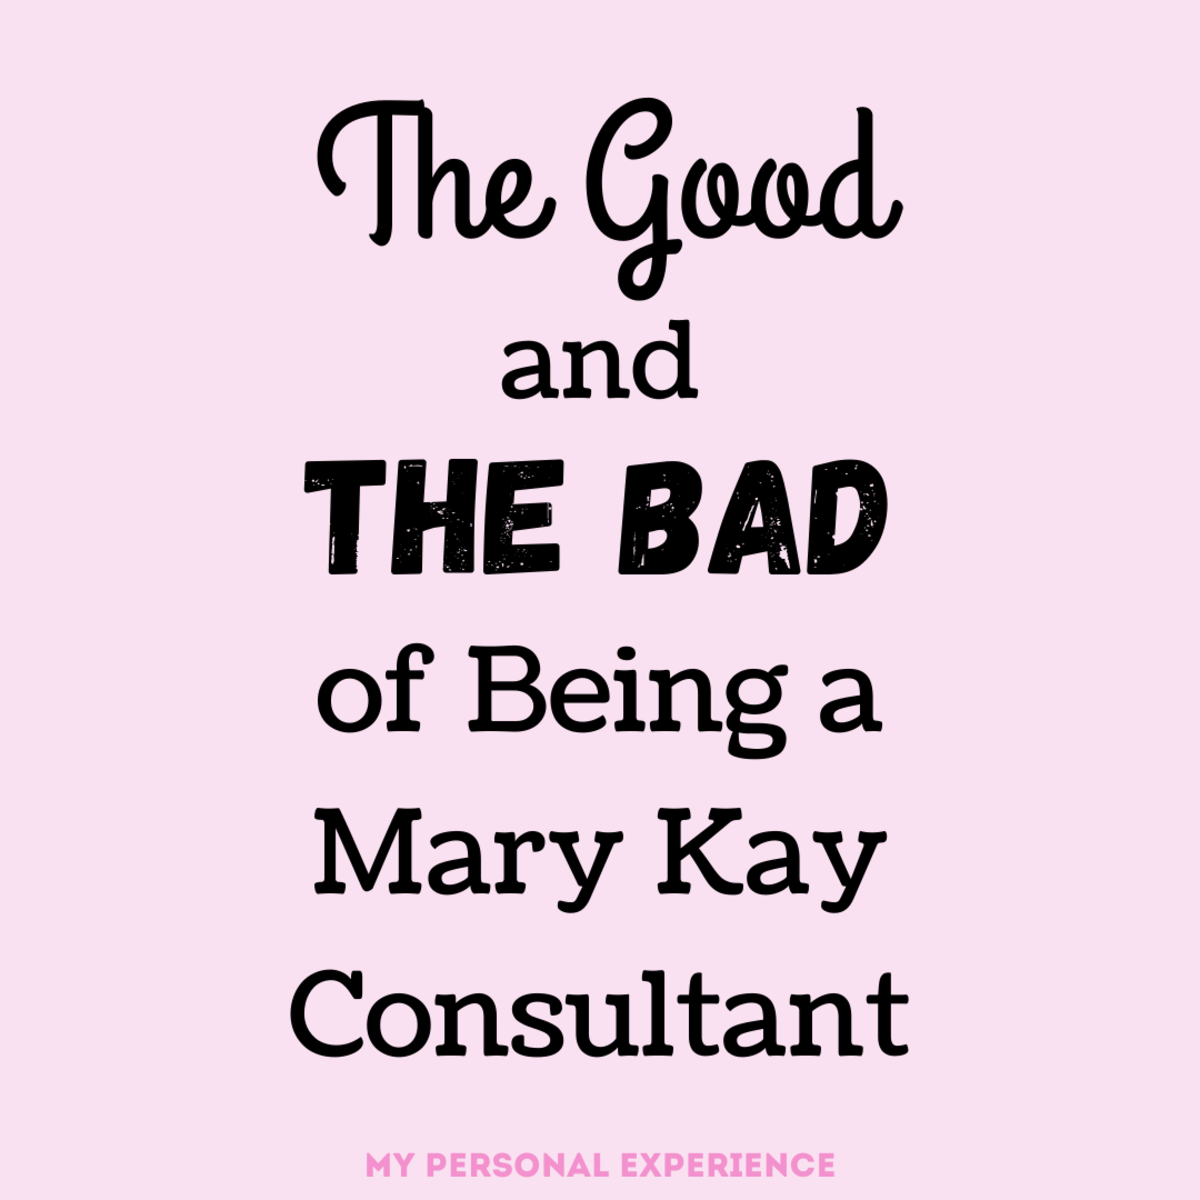 Read about my personal journey as a Mary Kay Consultant and the positive and negative experiences I had.